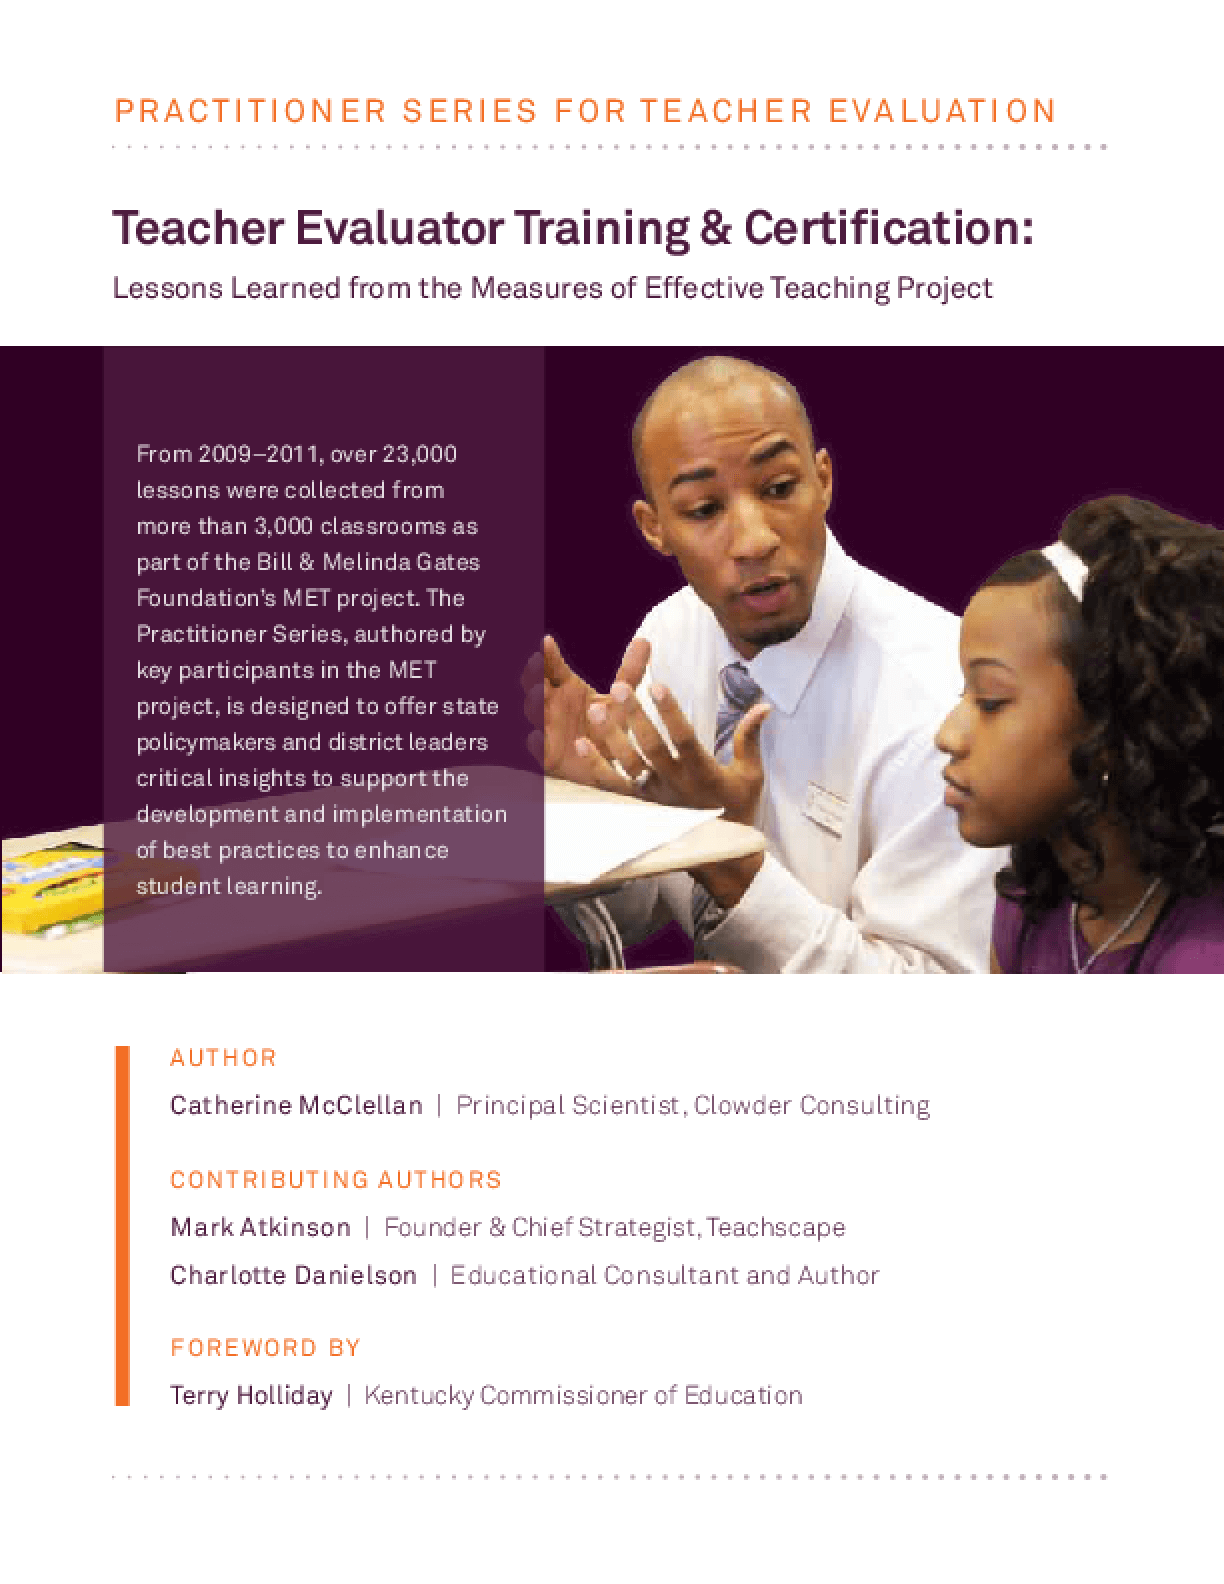 Teacher Evaluator Training & Certification: Lessons Learned From the Measures of Effective Teaching Project